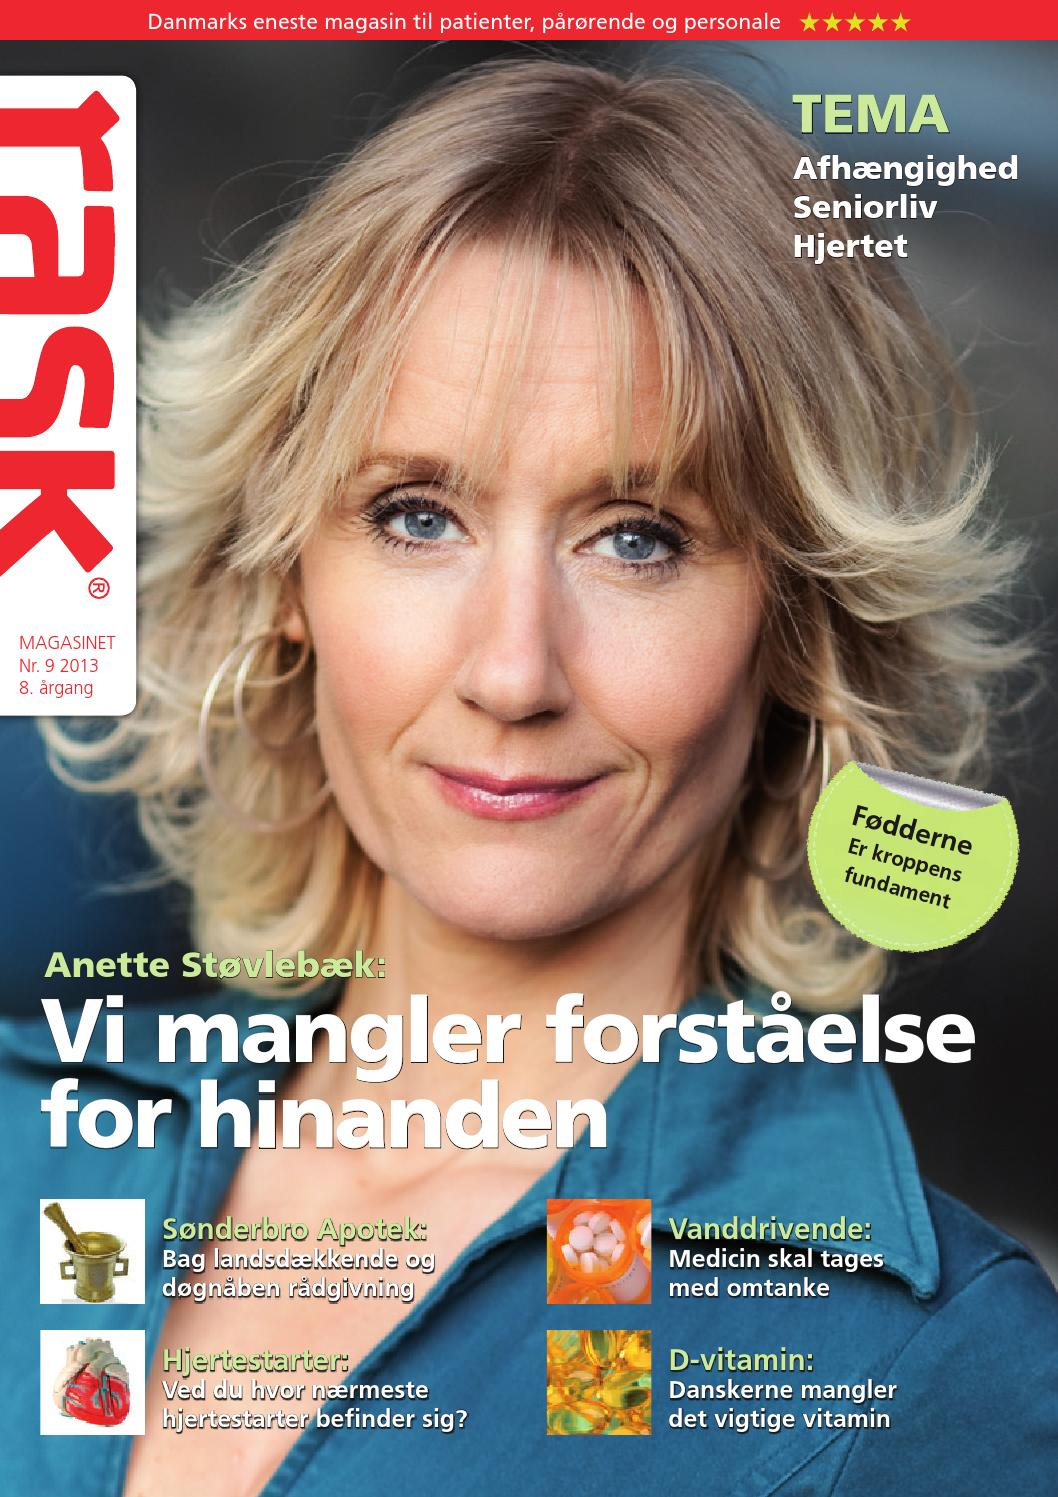 RASK Magasinet nr. 9 - 2013 by RASK Media ApS - issuu